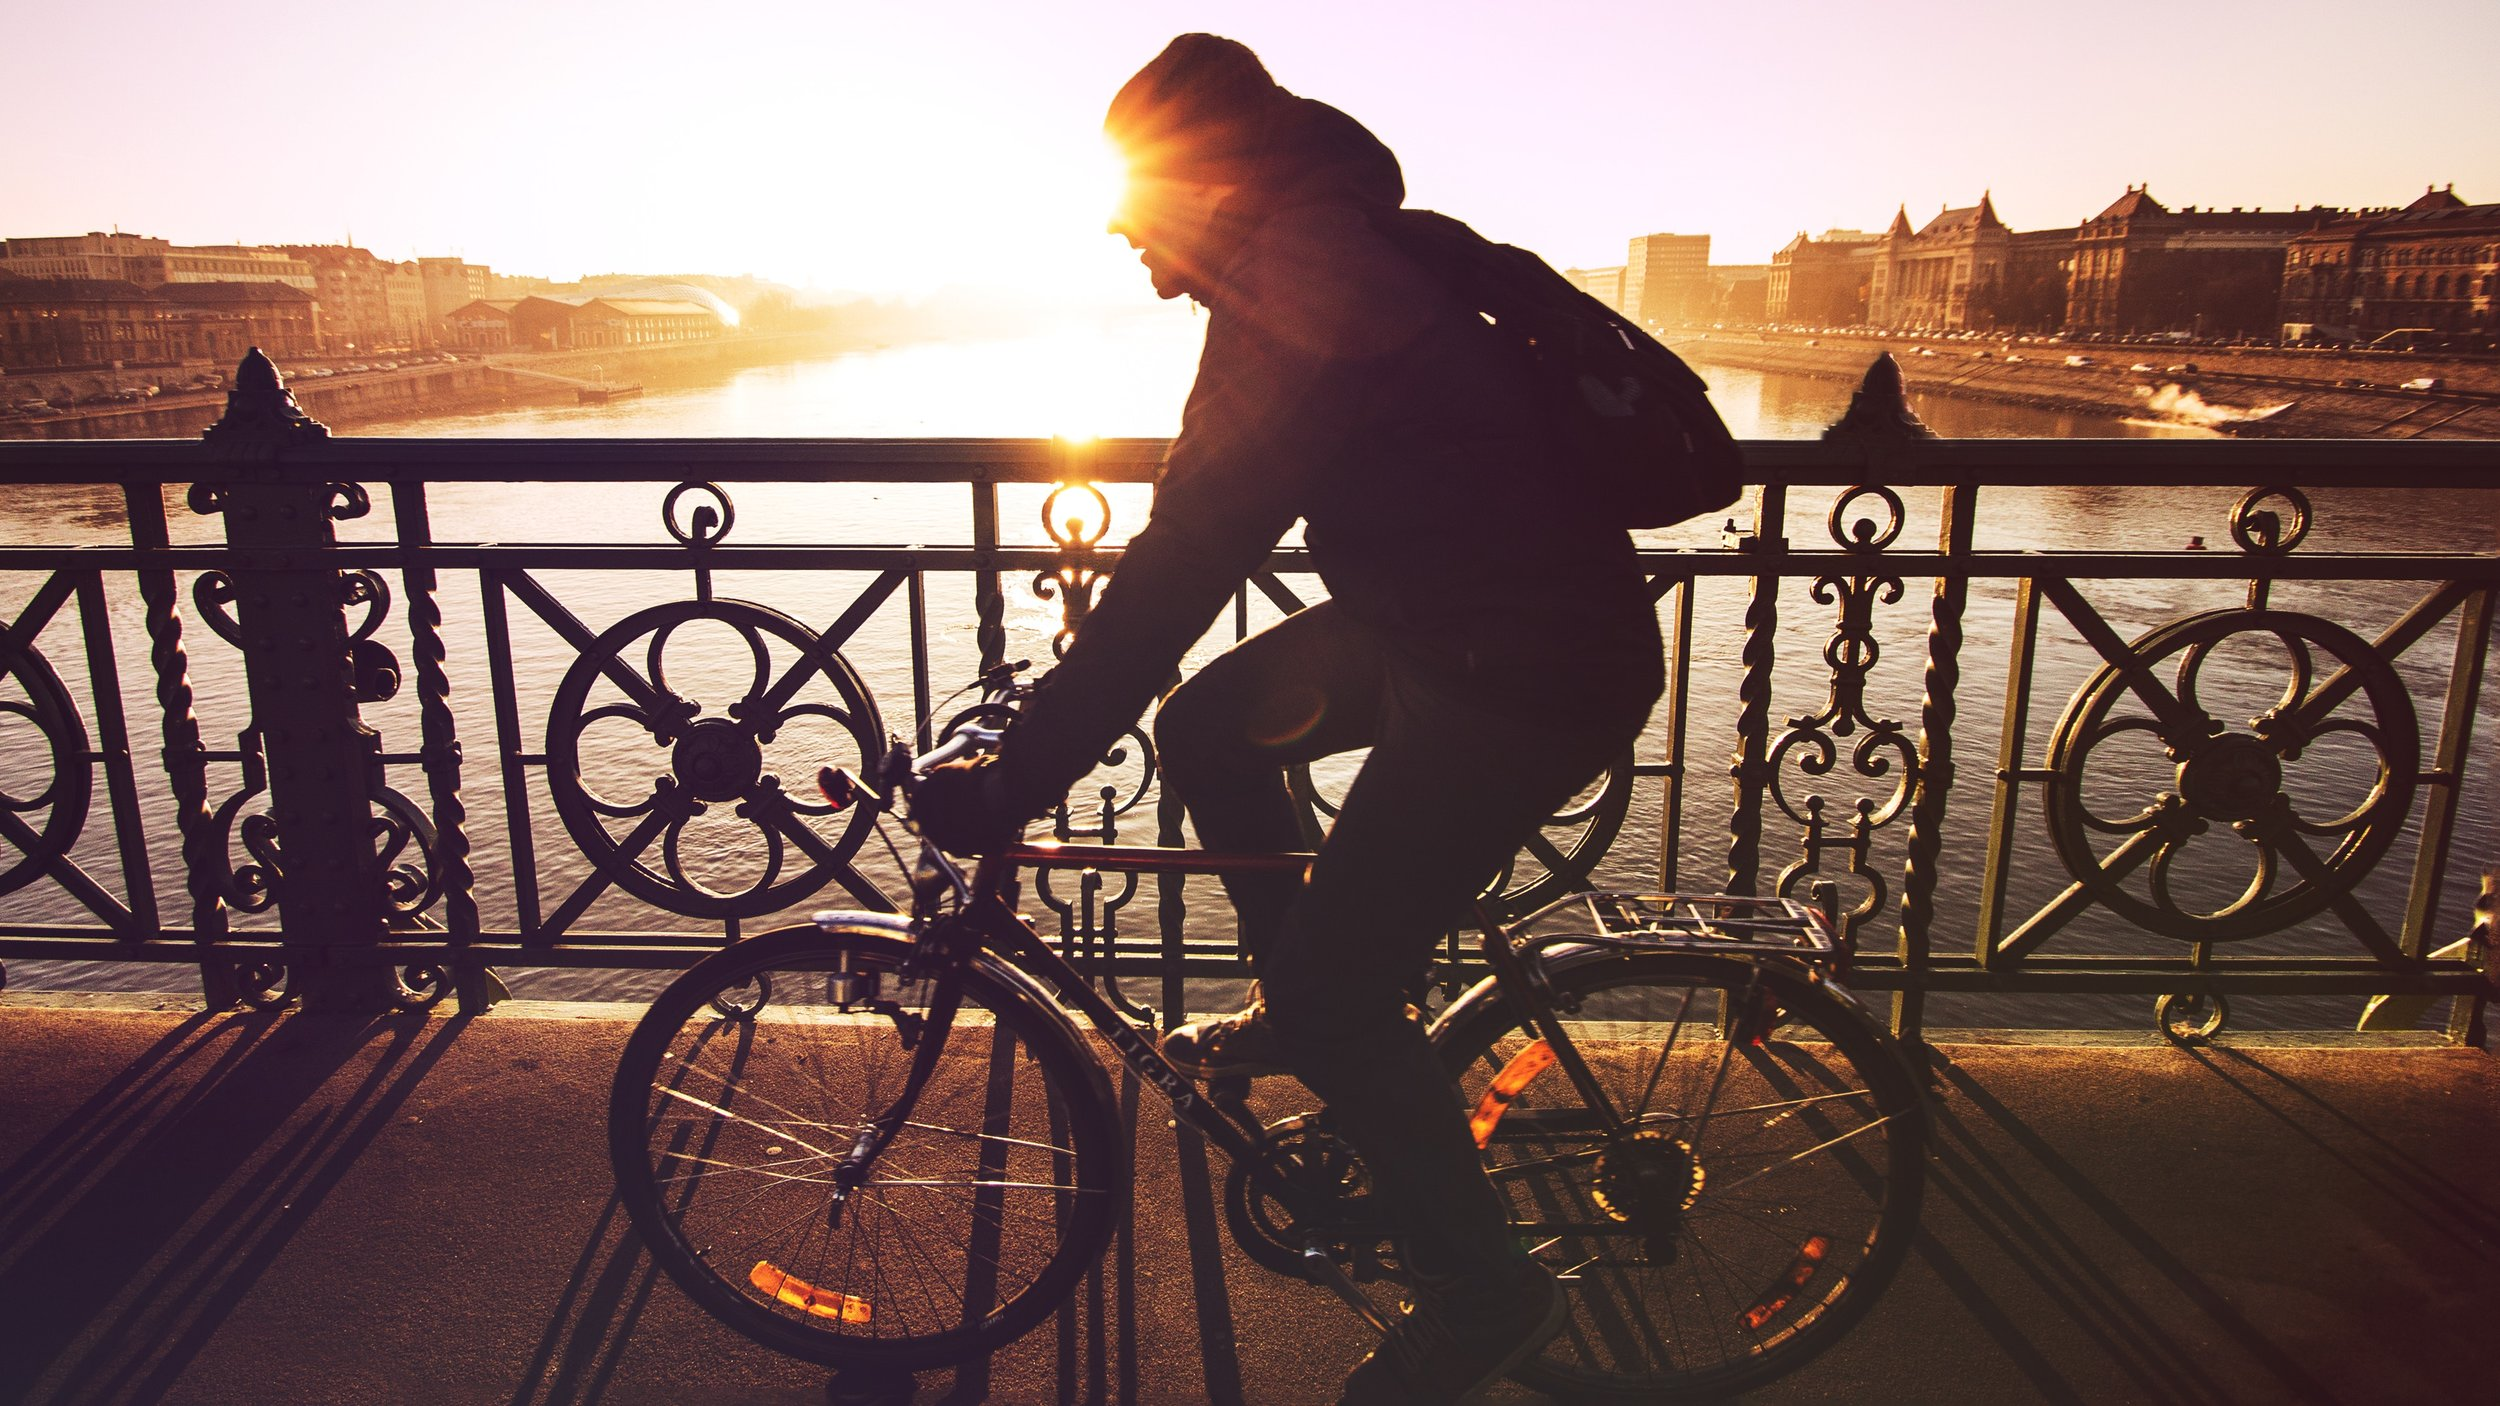 A man cycling across an urban bridge